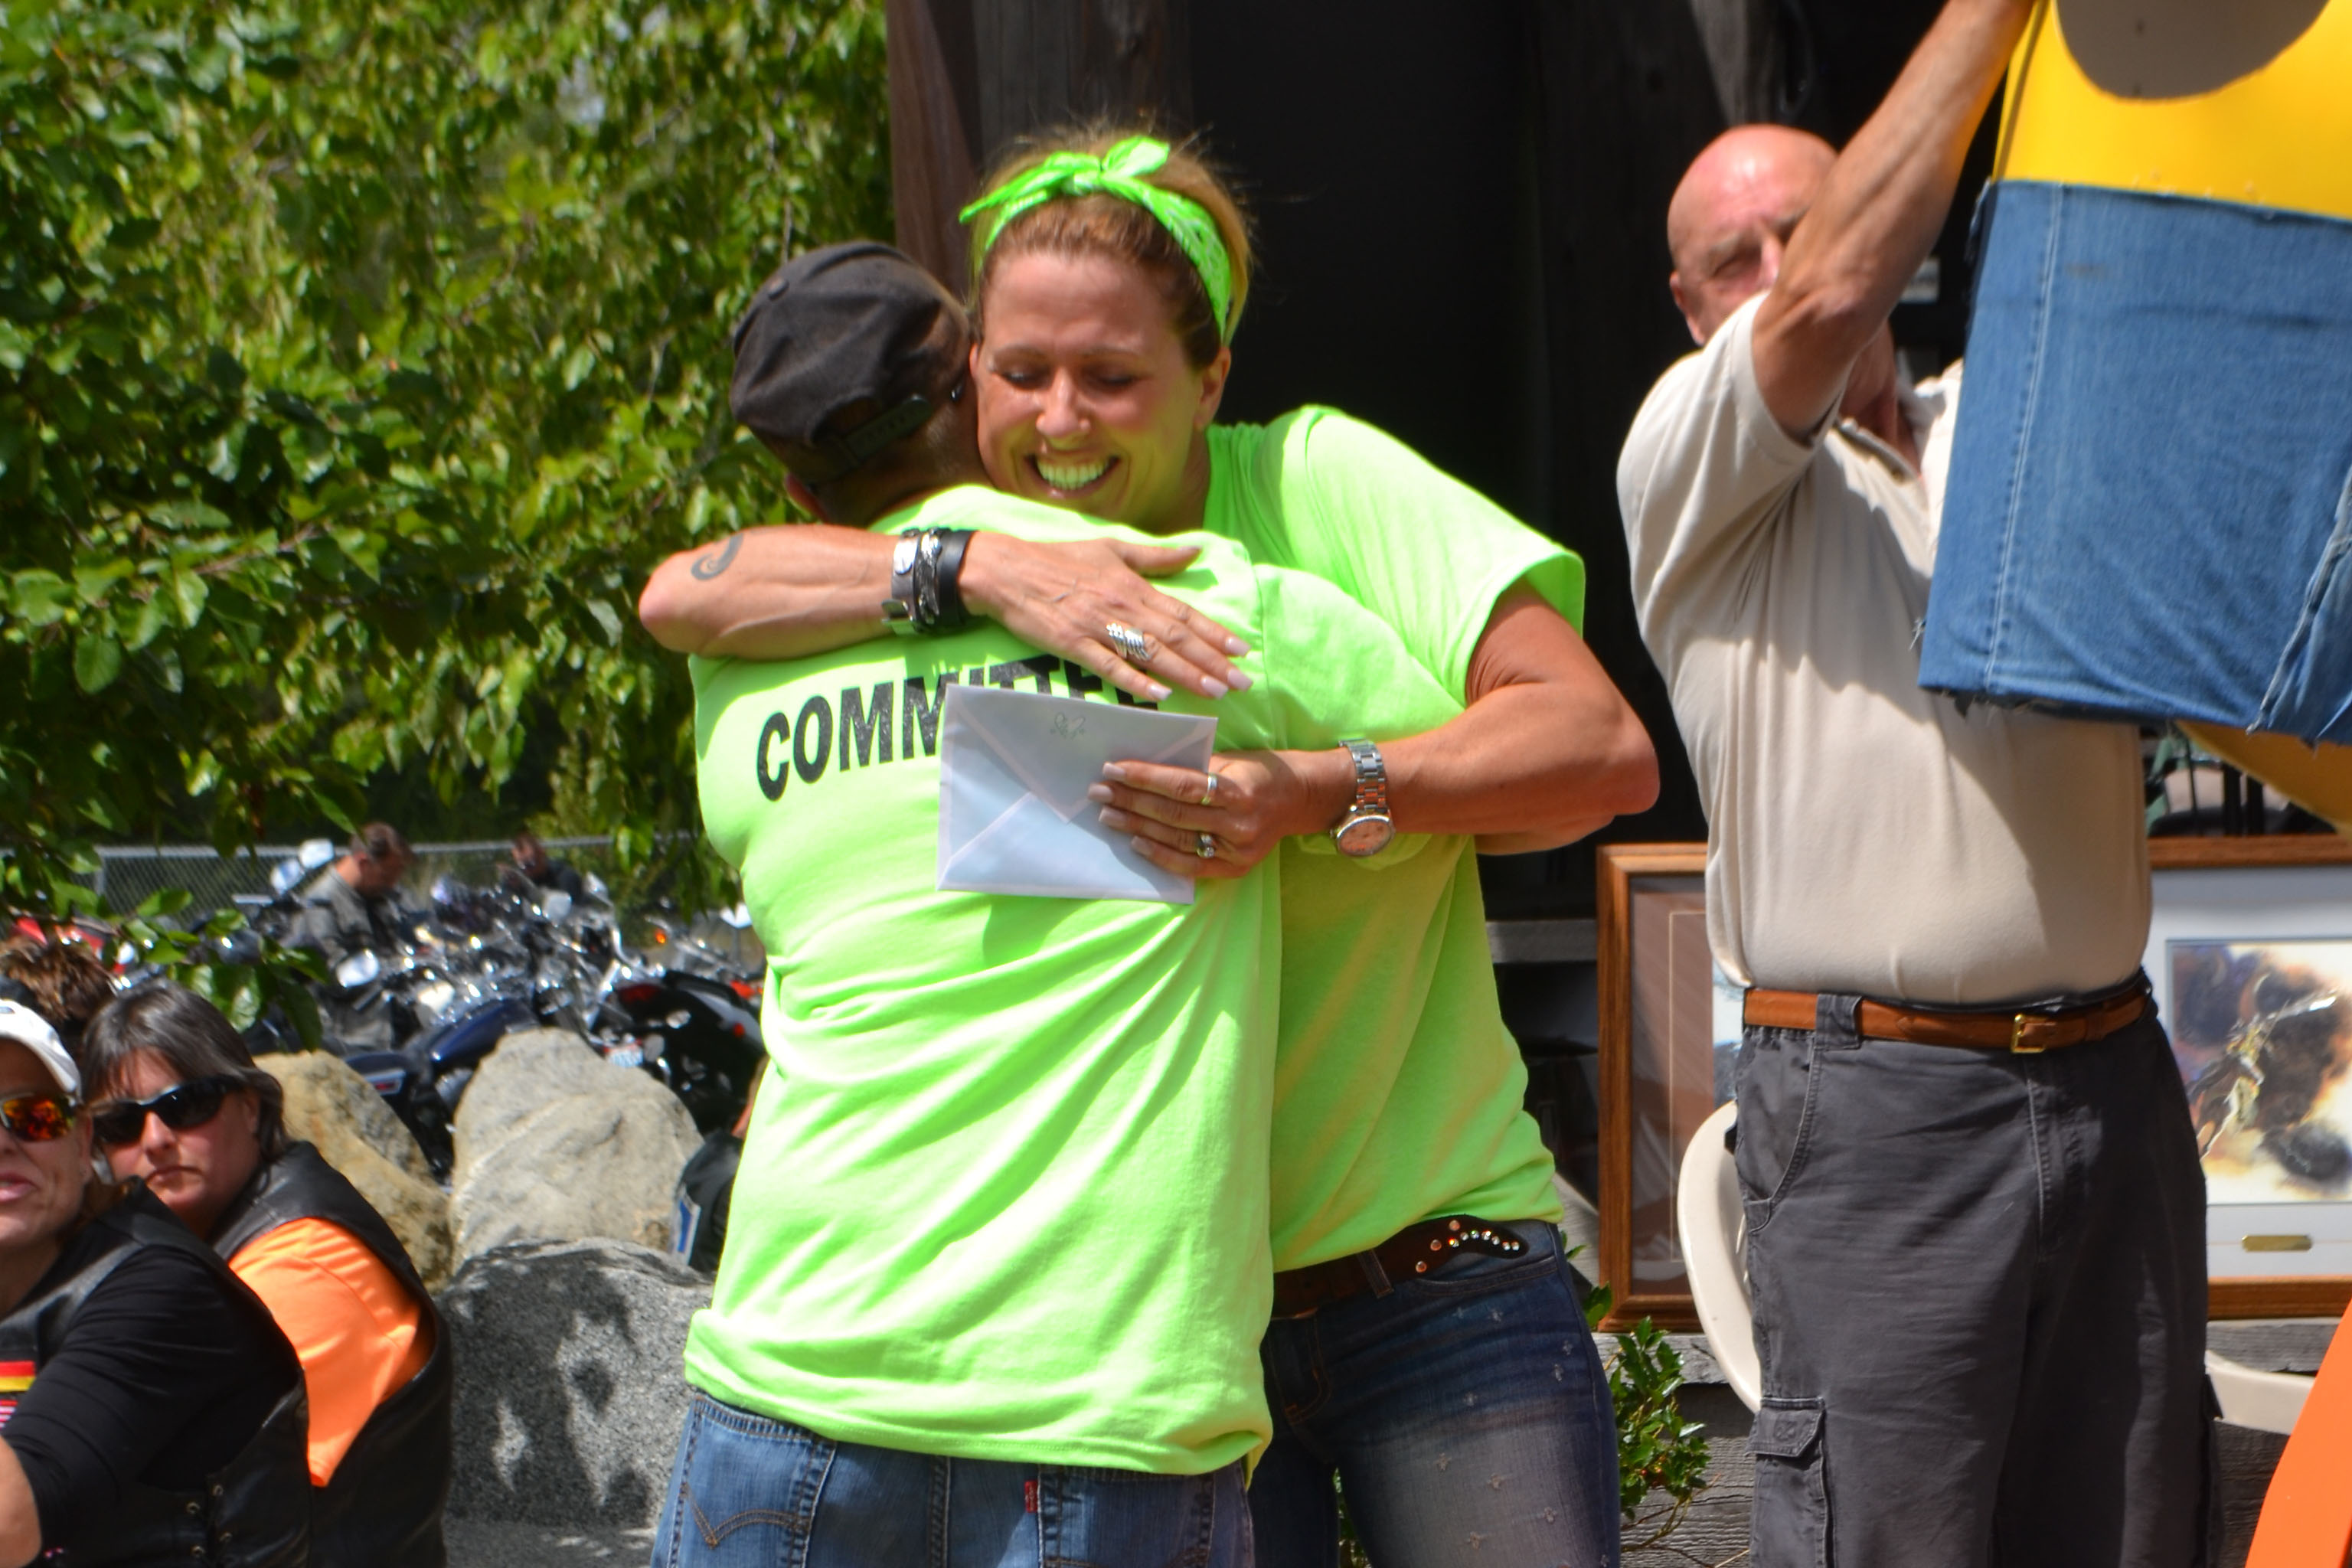 Two Ride for Life committee members embracing each other.